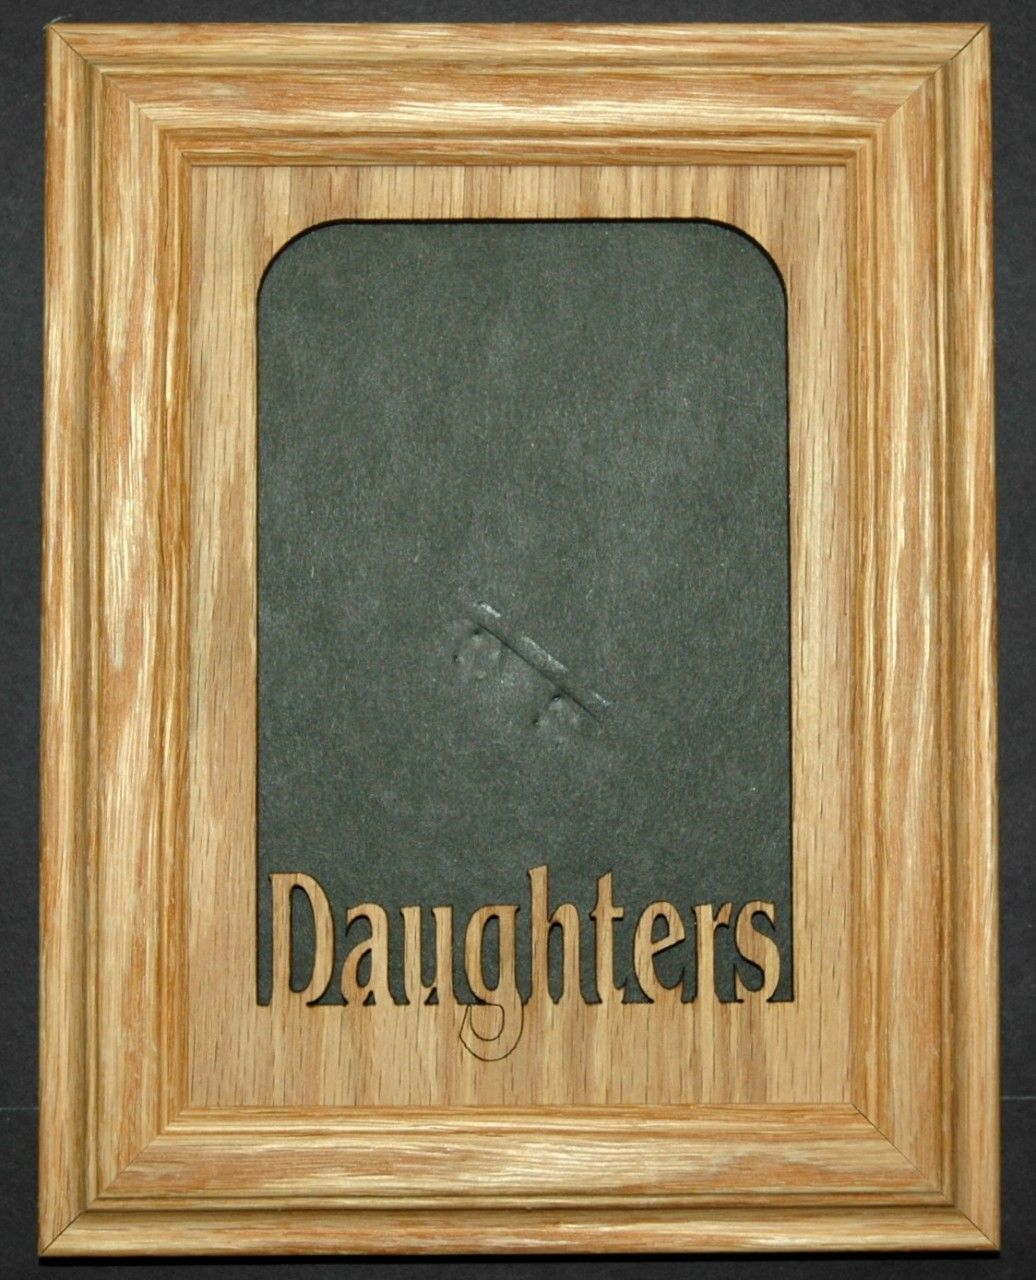 Stan S Gifts Daughters V Picture Frame 5x7 19 95 Http Www Stansgifts Com Daughters V Picture Frame 5x7 Frame Picture Frames 5x7